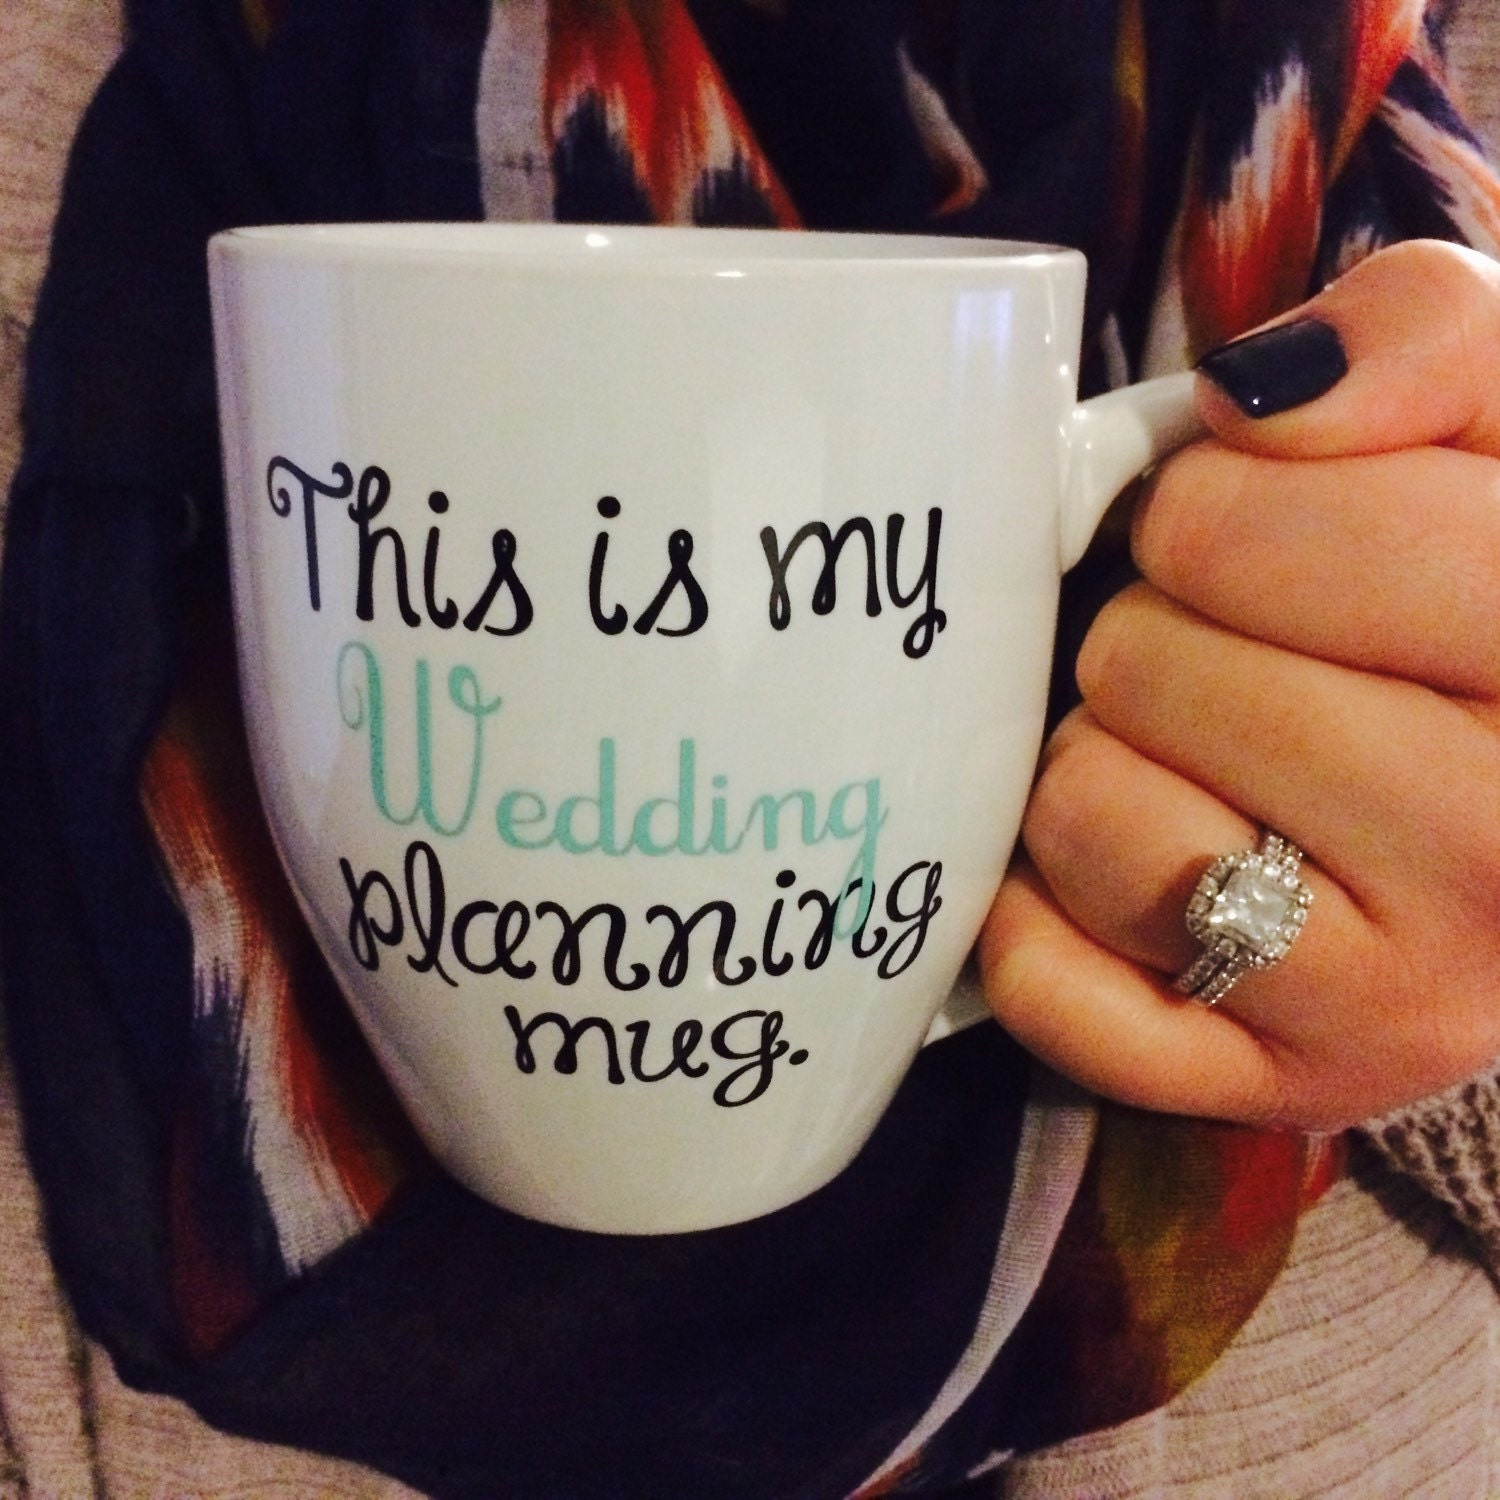 Wedding Preparation: Wedding Planning Mug